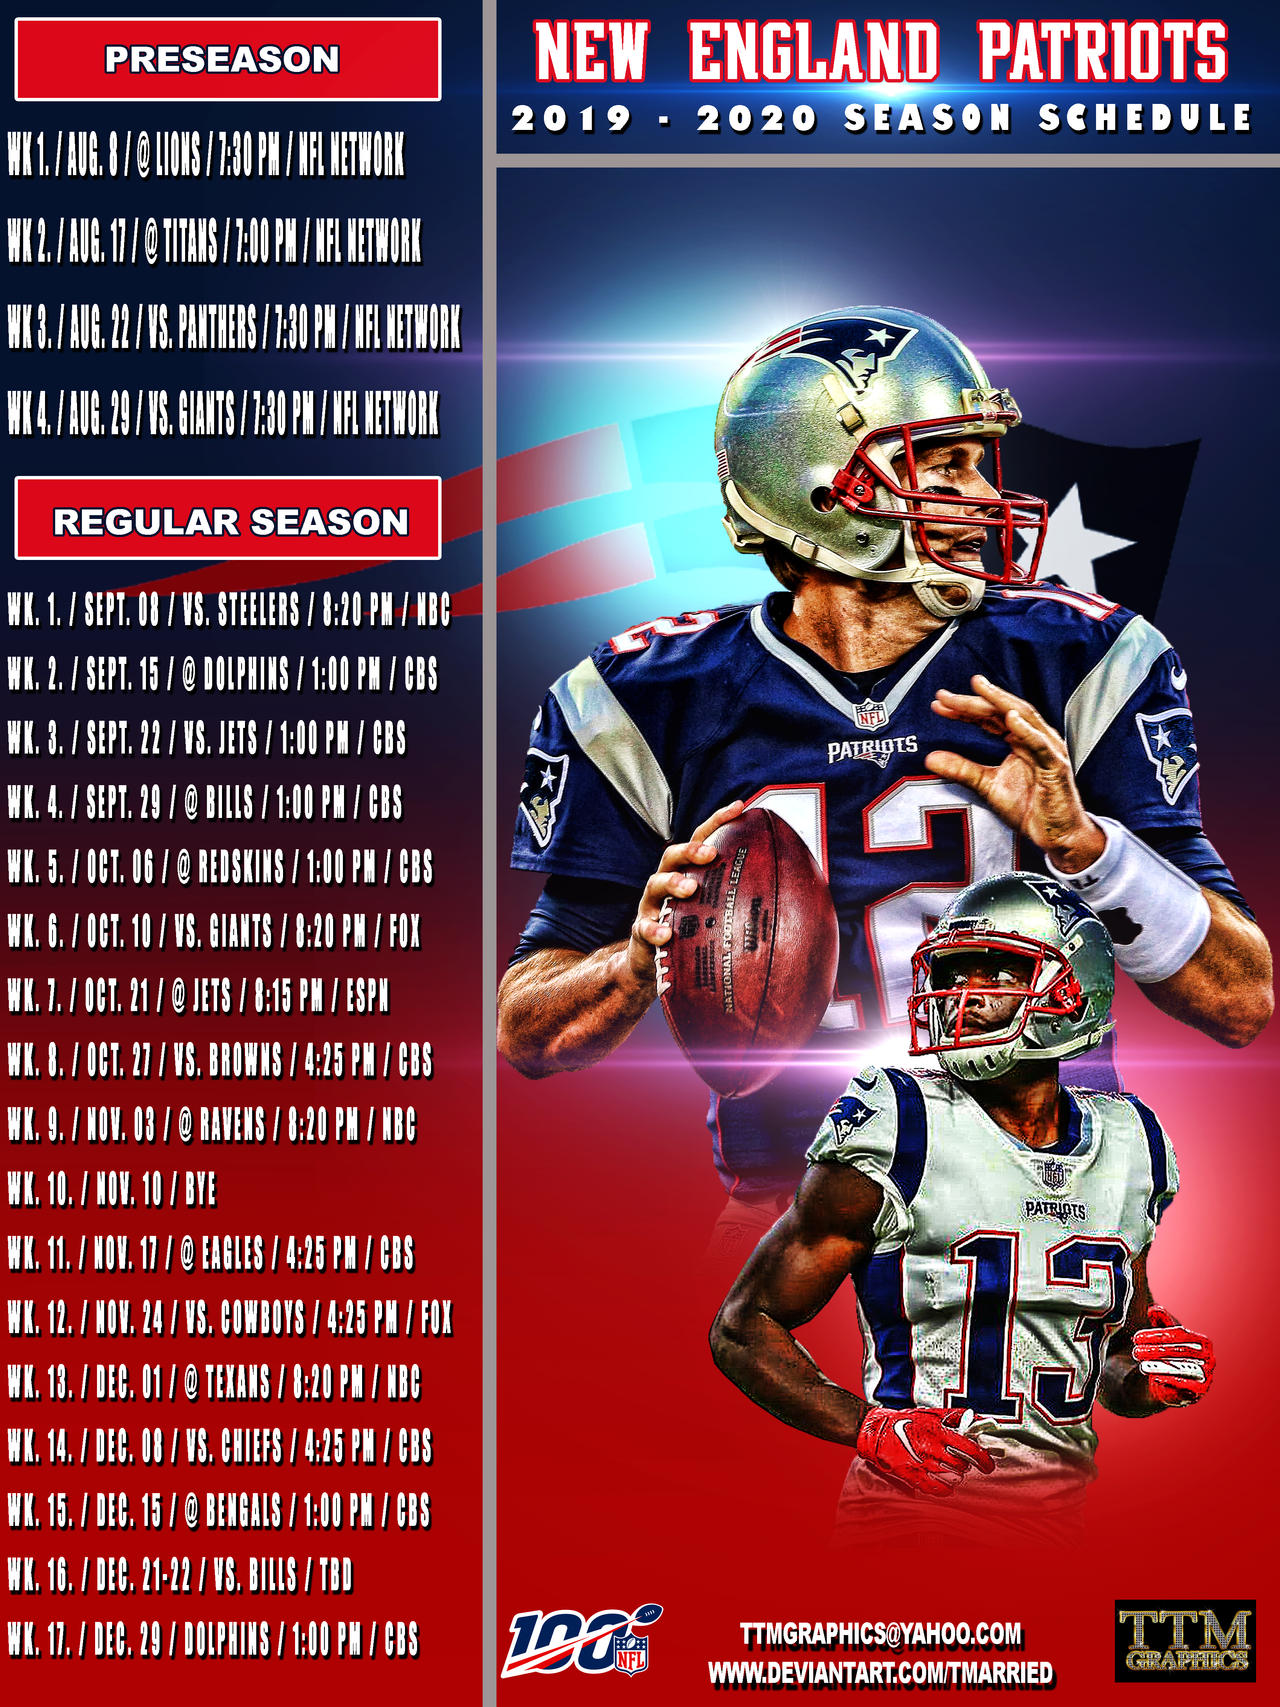 New England Patriots Schedule 2020.2019 2020 Season Schedule New England Patriots By